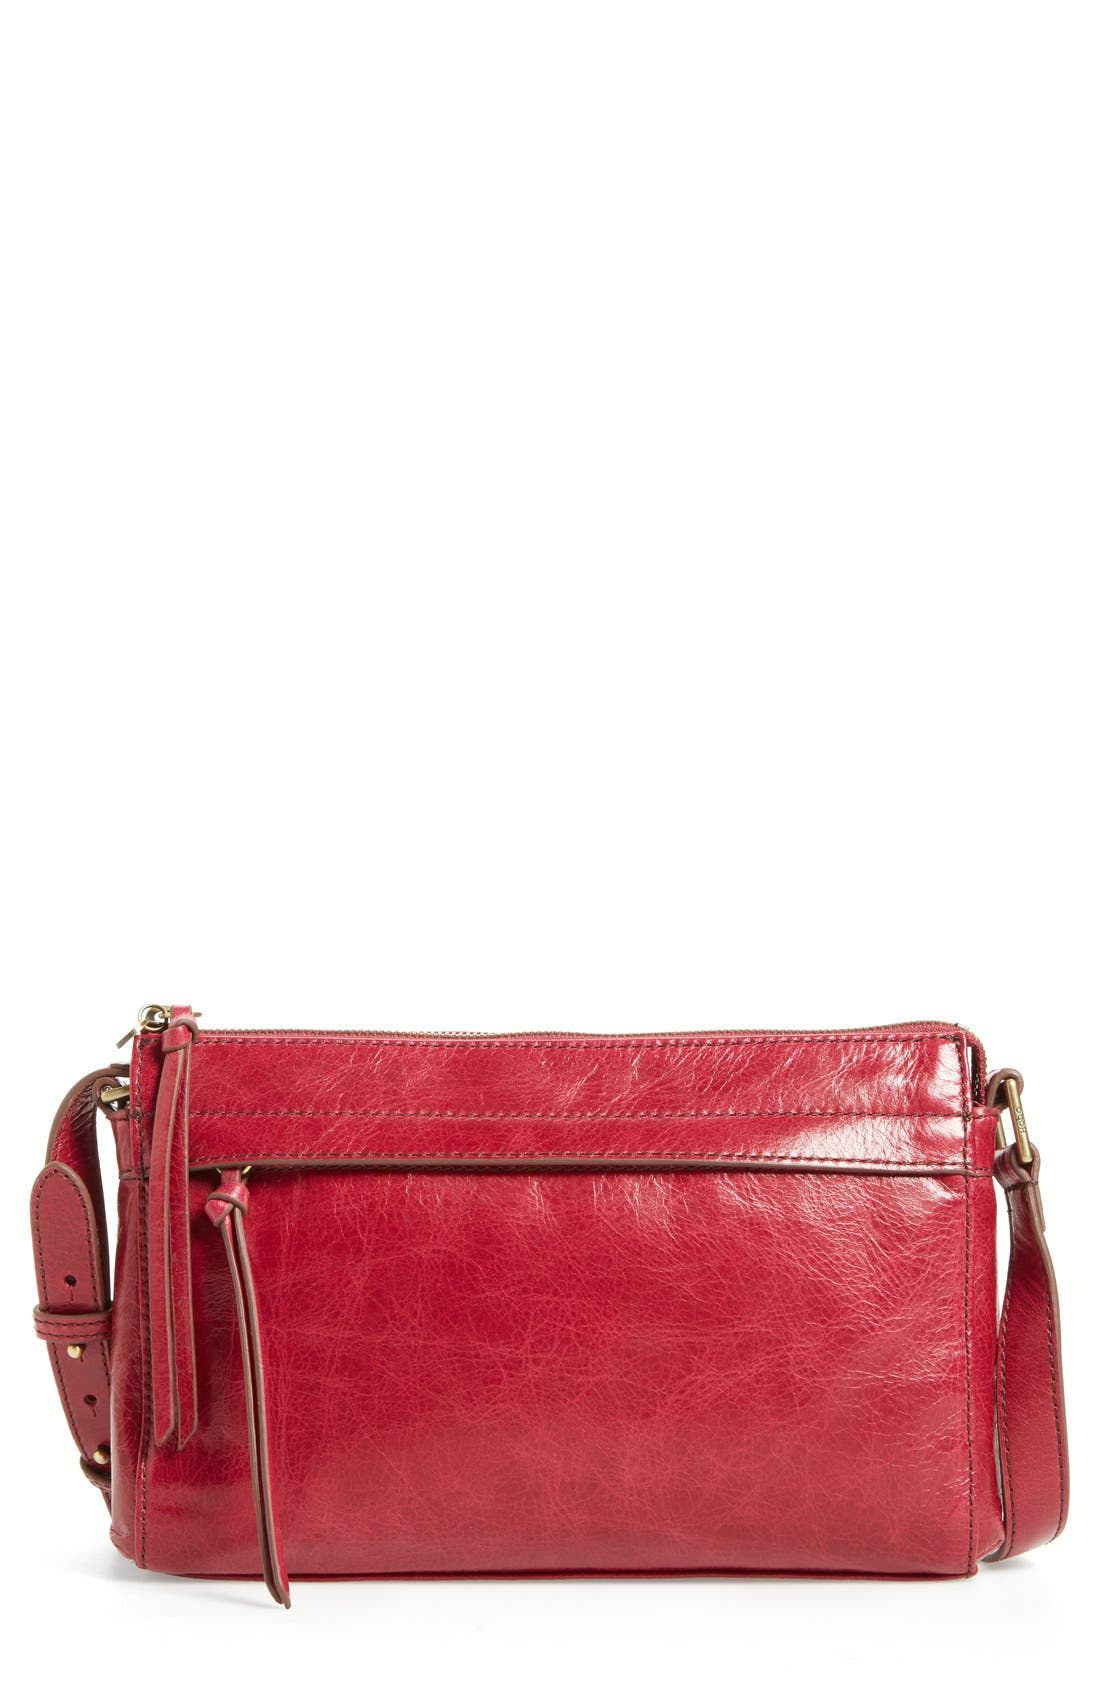 Tobey Leather Crossbody Bag,                             Main thumbnail 8, color,